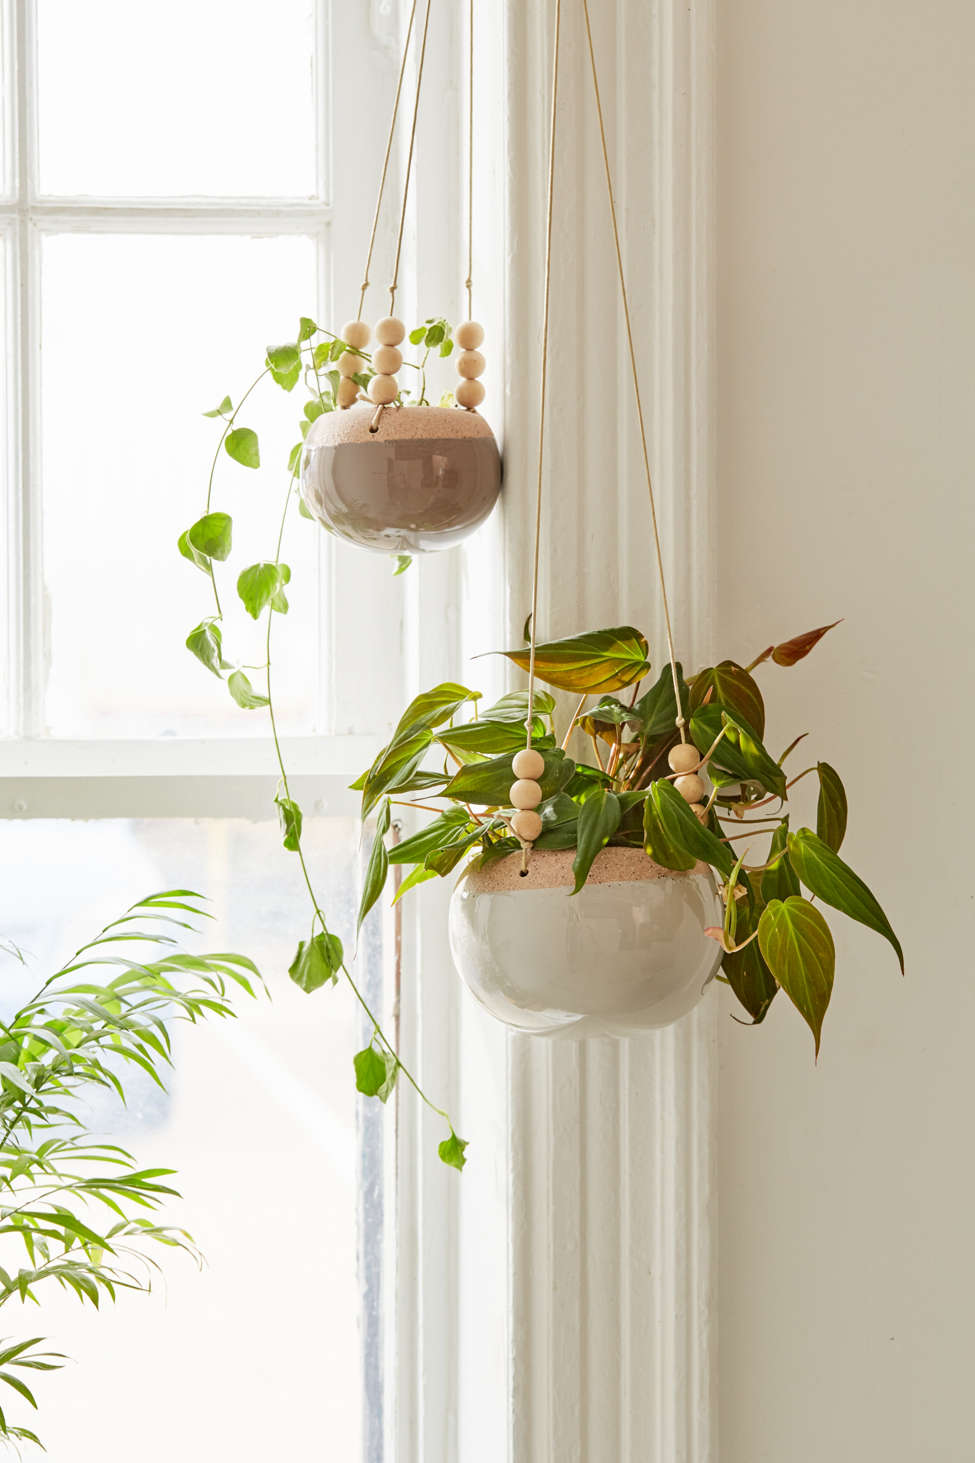 Slide View: 2: Stevie Wood Bead Hanging Planter